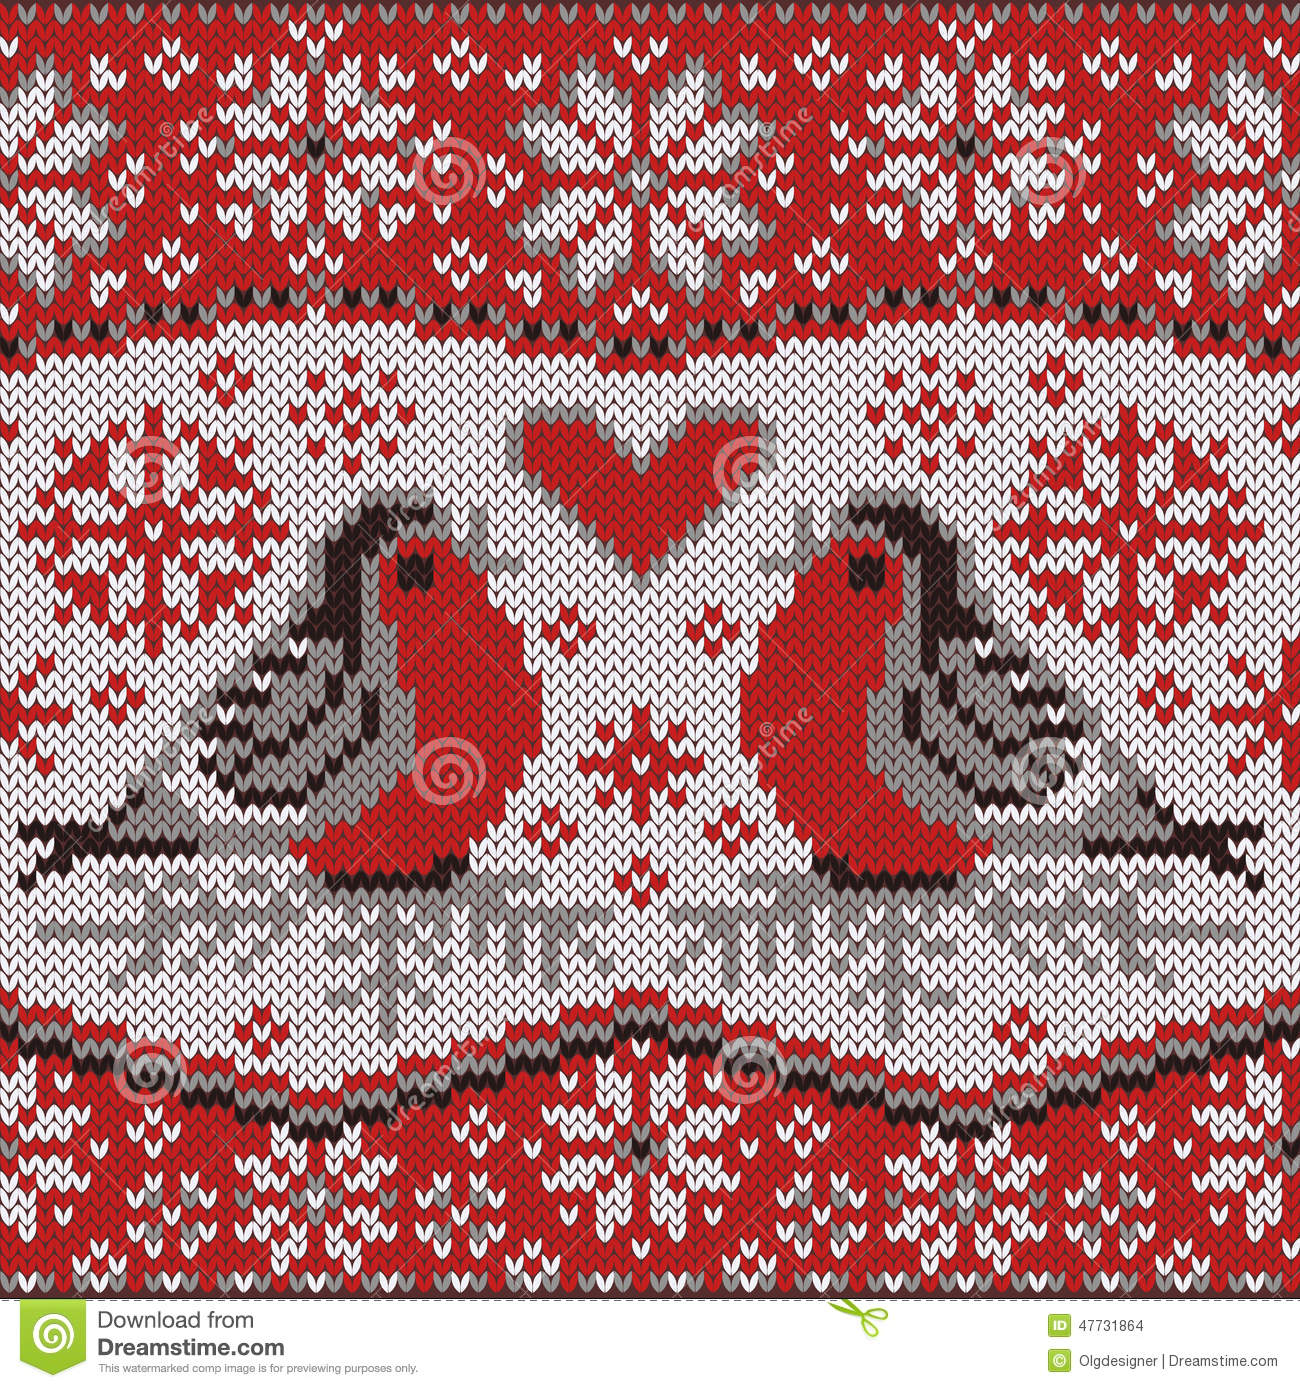 Knitting Patterns For Christmas Cards : Greeting Card With Bullfinches, Nordic Knitted Pattern Stock Vector - Image: ...